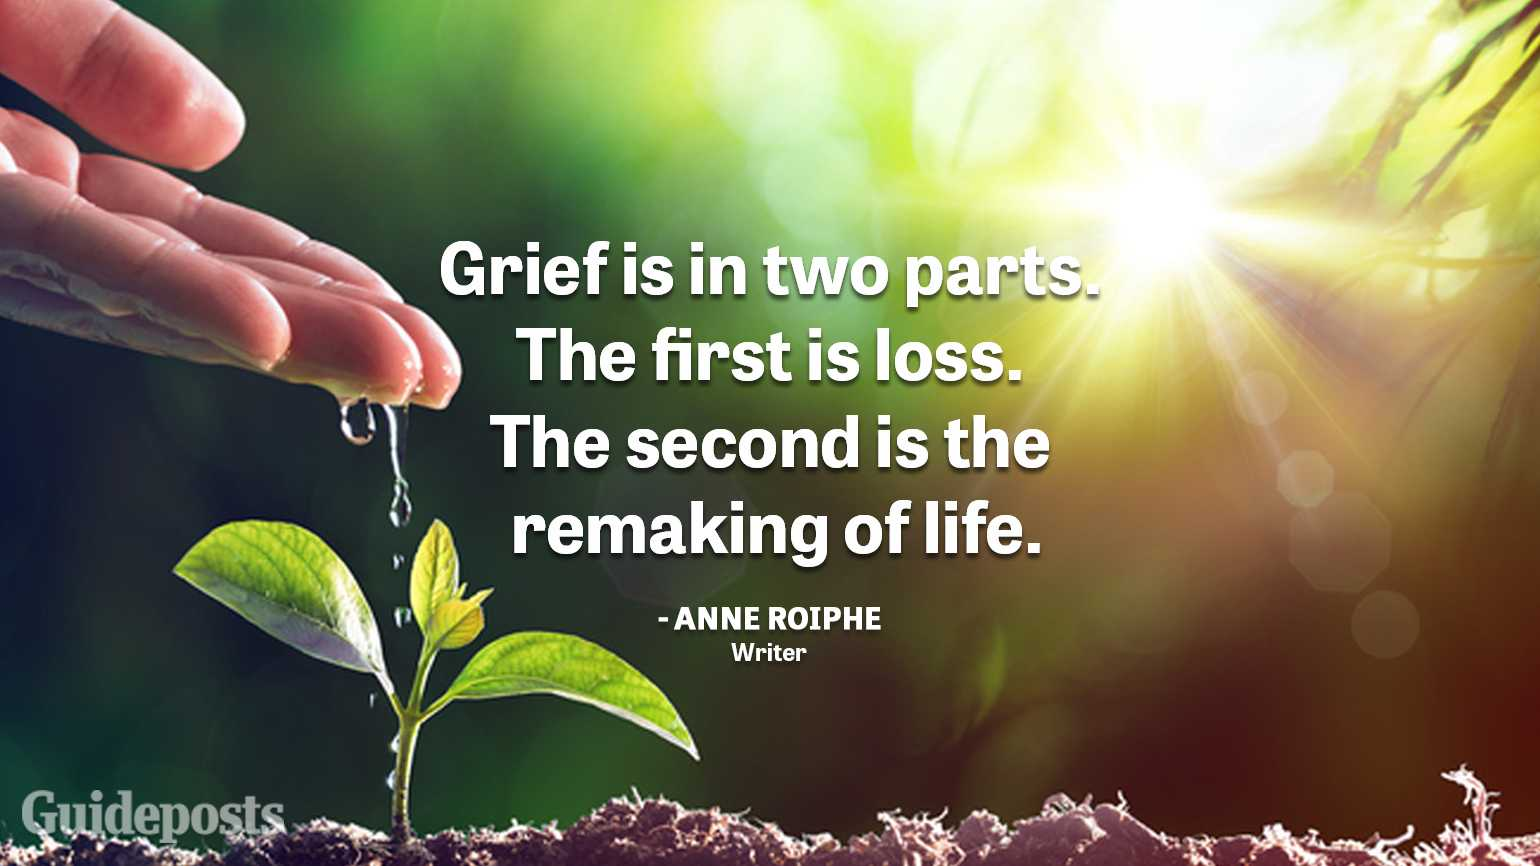 Uplifting Grief Quotes | Guideposts